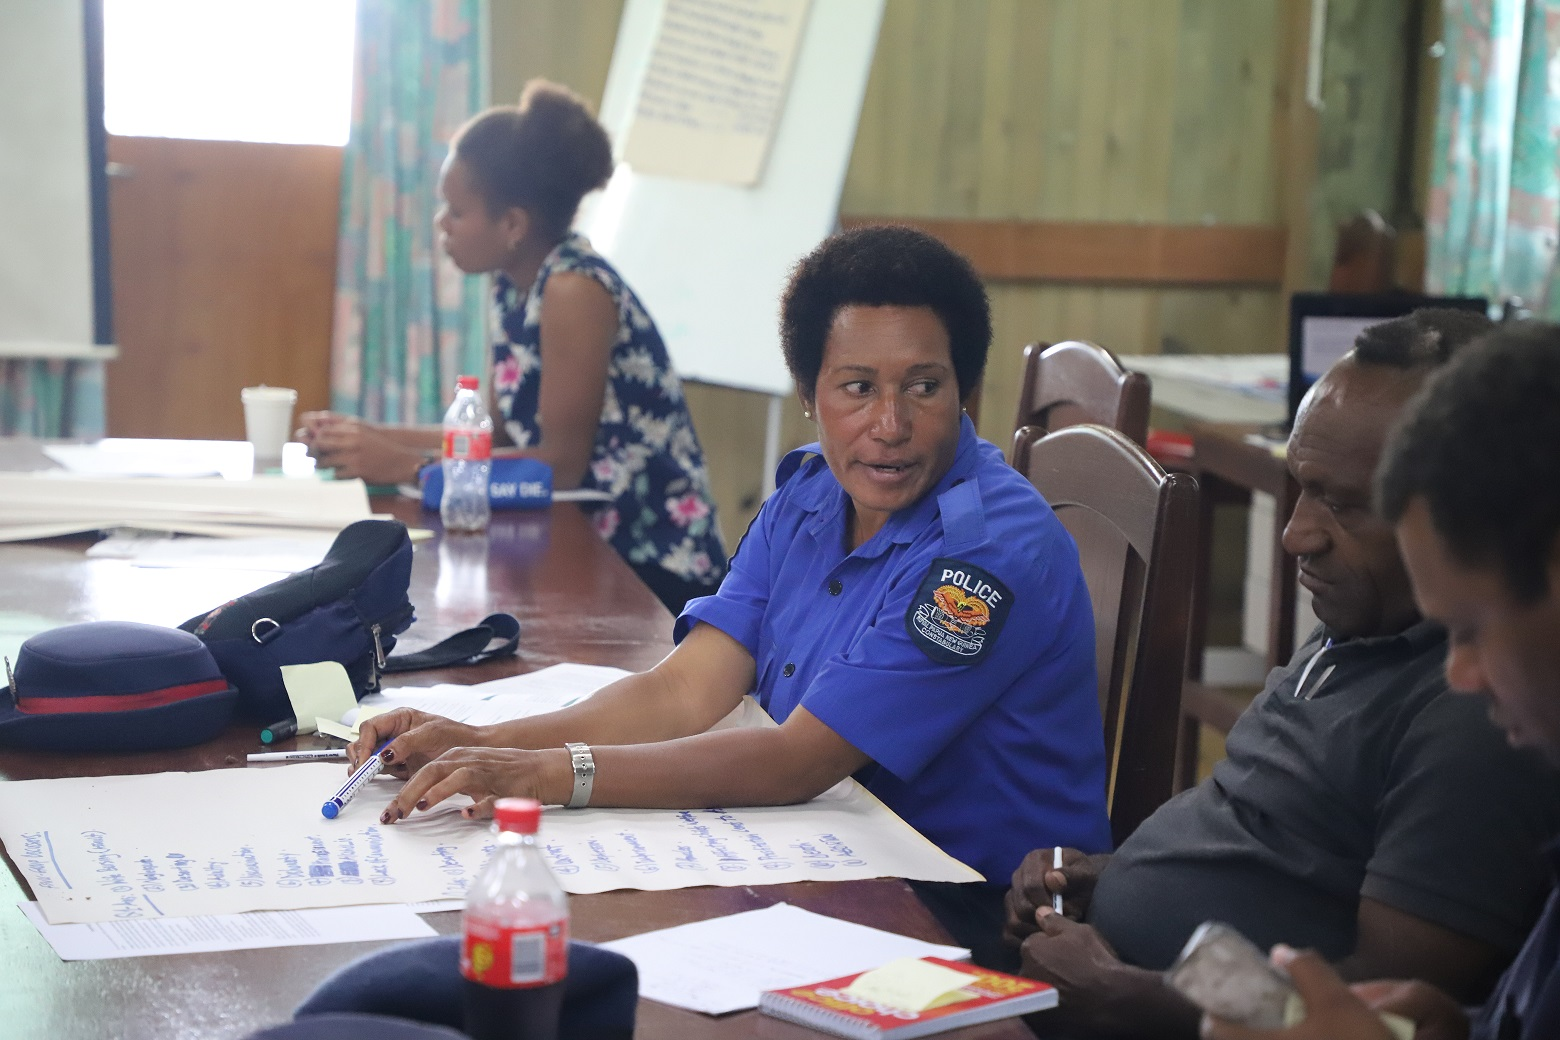 Corporal Christine Luke from the Moro Police Station participates in the group discussion.